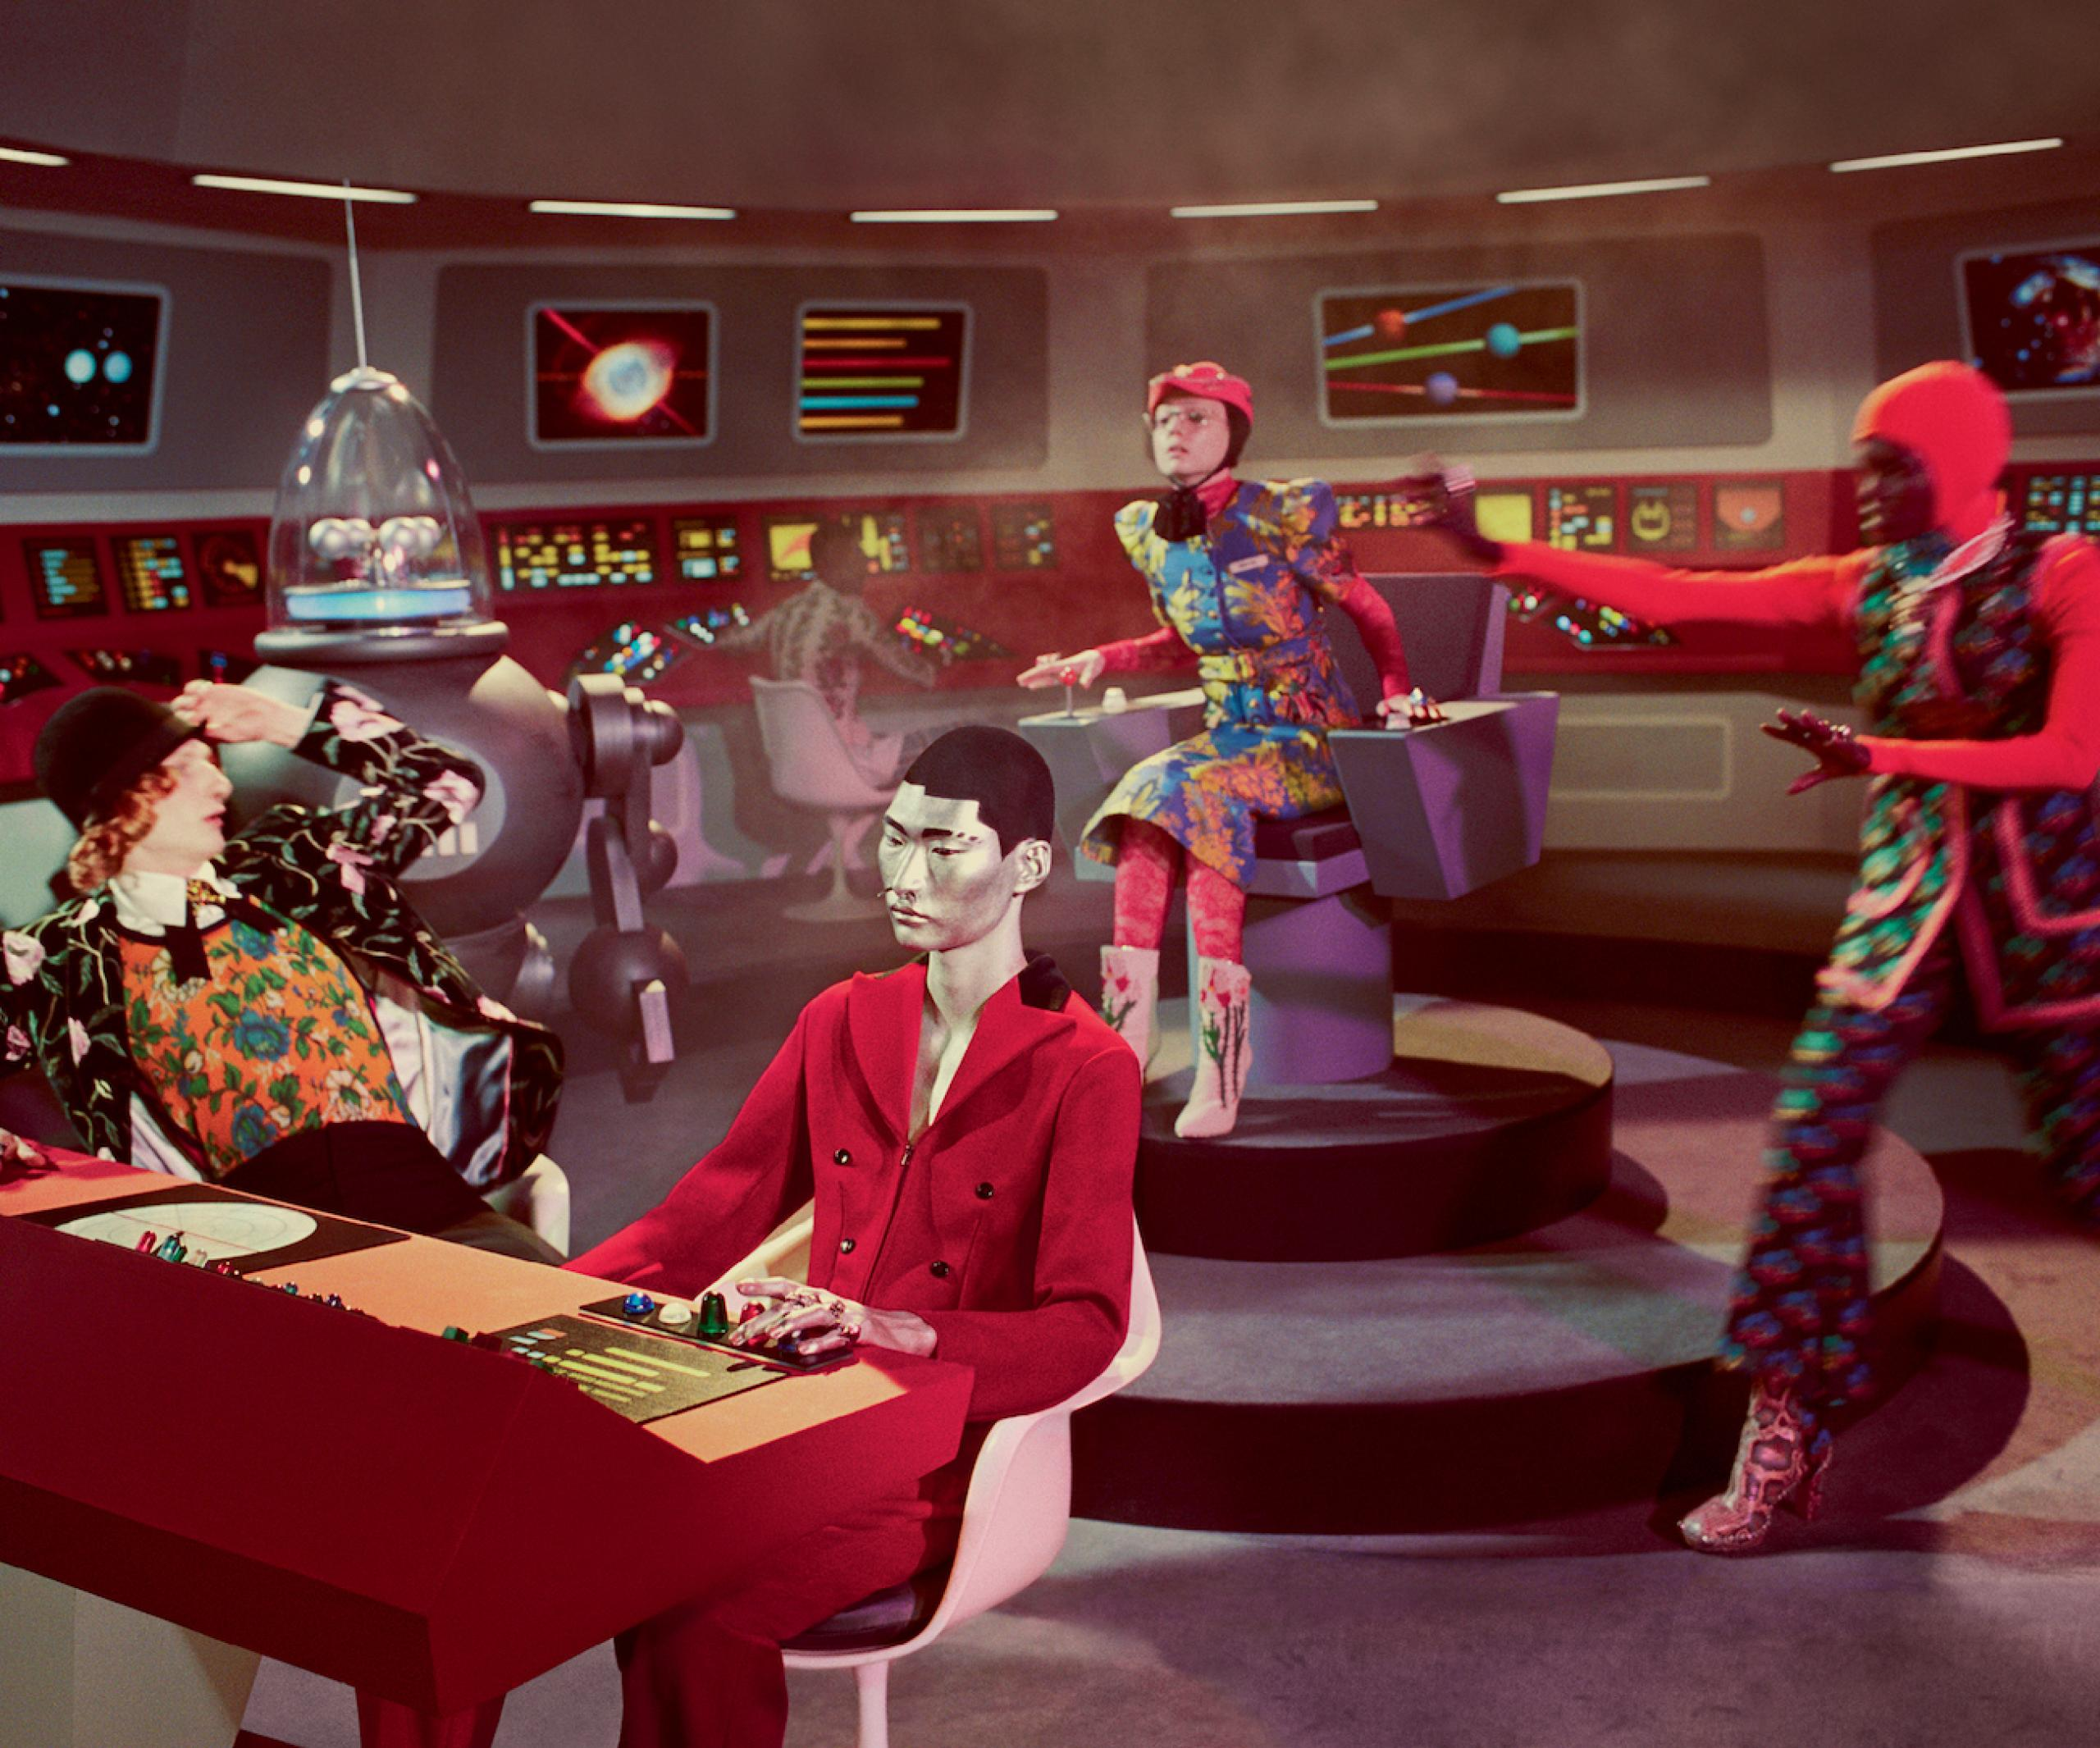 Gucci Fall Winter 2017 film campaign Director: Glen Luchford, Art Director: Christopher Simmonds M & © 2017 CBS Studios Inc. STAR TREK and related marks are properties owned by CBS Studios Inc. All Rights Reserved.